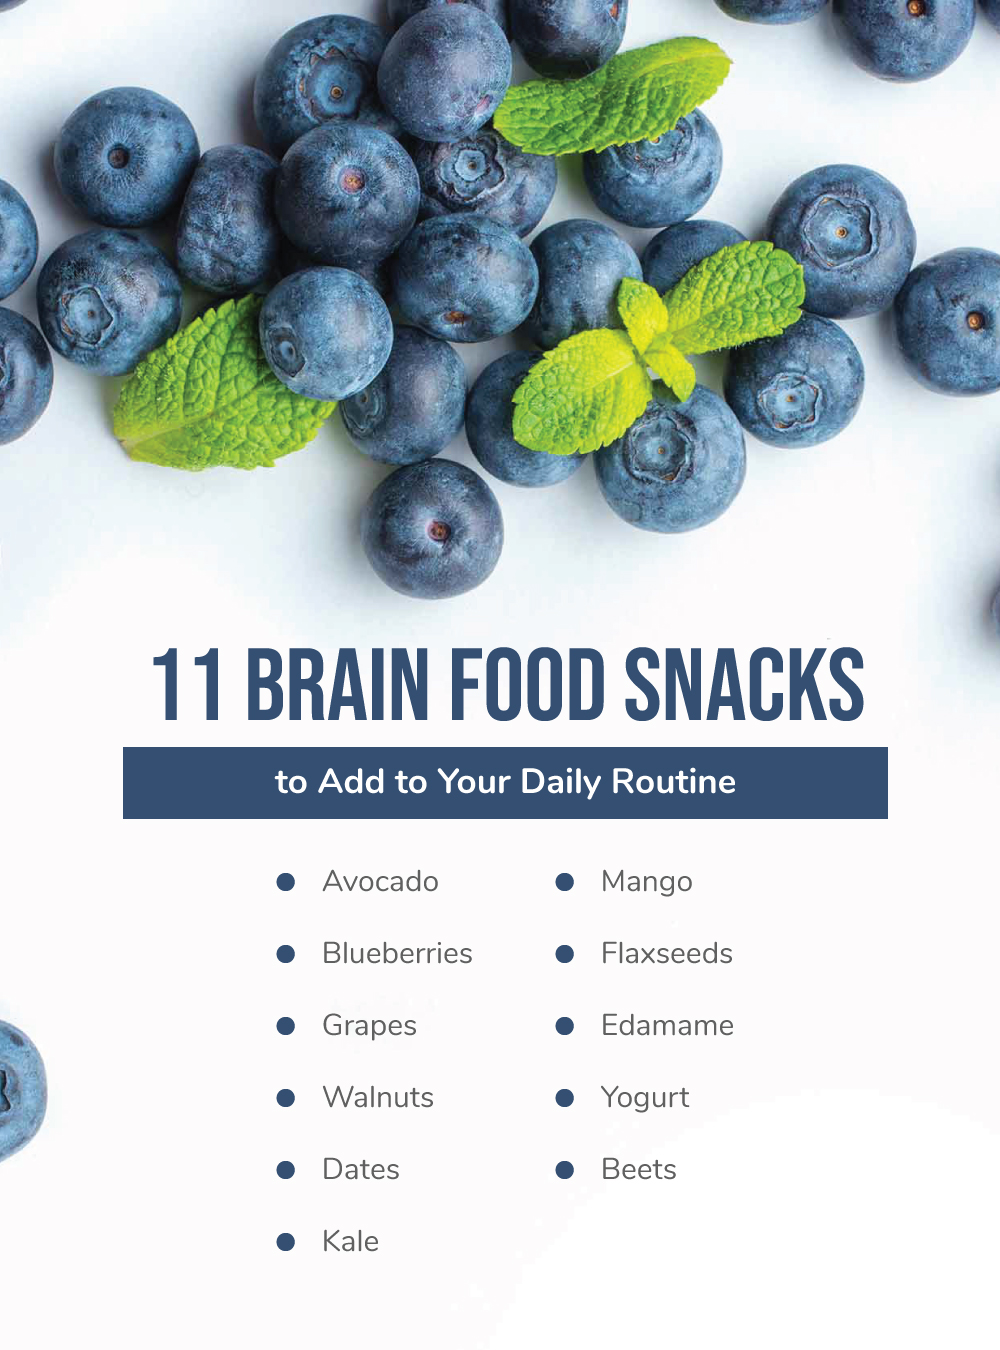 11 Brain Food Snacks to Add to Your Daily Routine